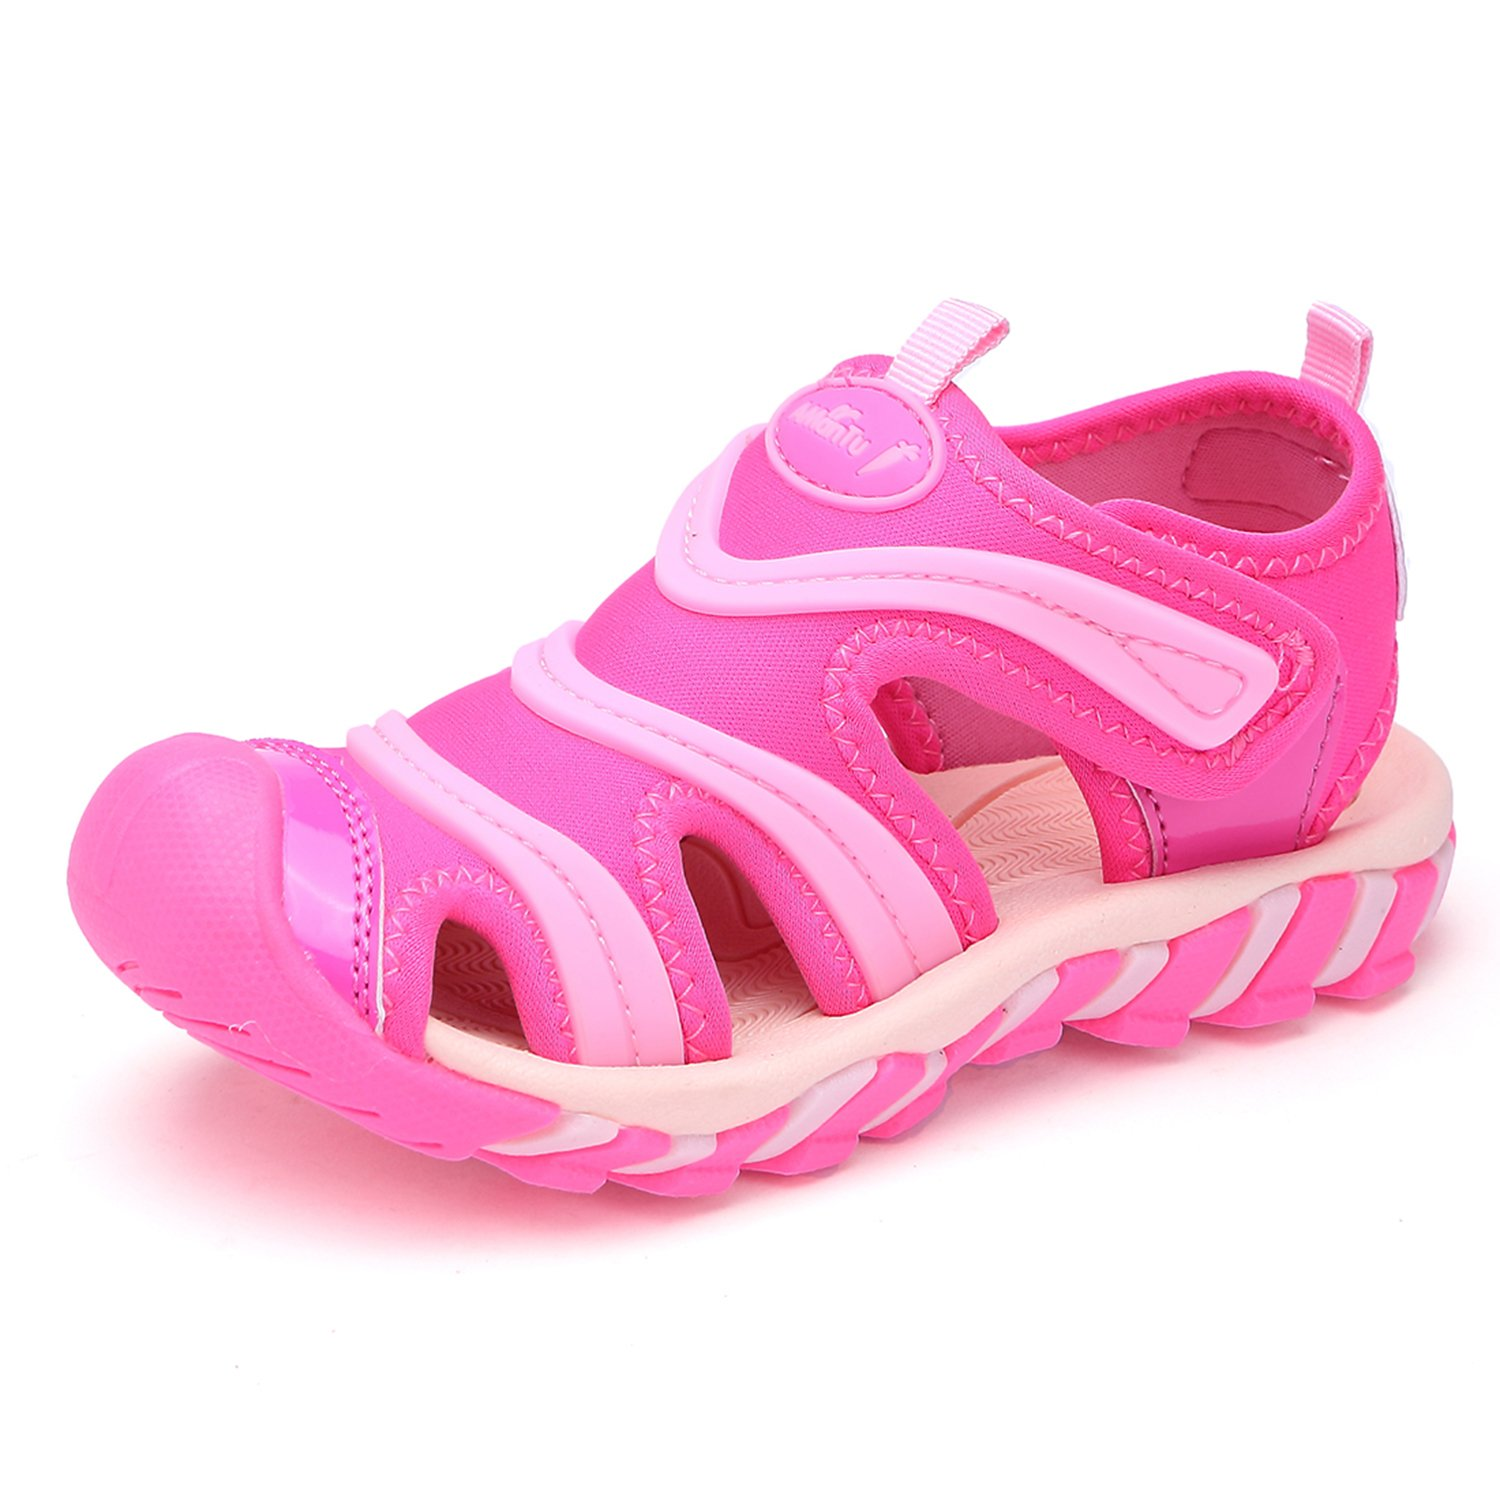 BTDREAM Boy's and Girl's Sports Sandals Breathable Closed-Toe Summer Outdoor Velcro Athletic Beach Shoes Pink Size 31